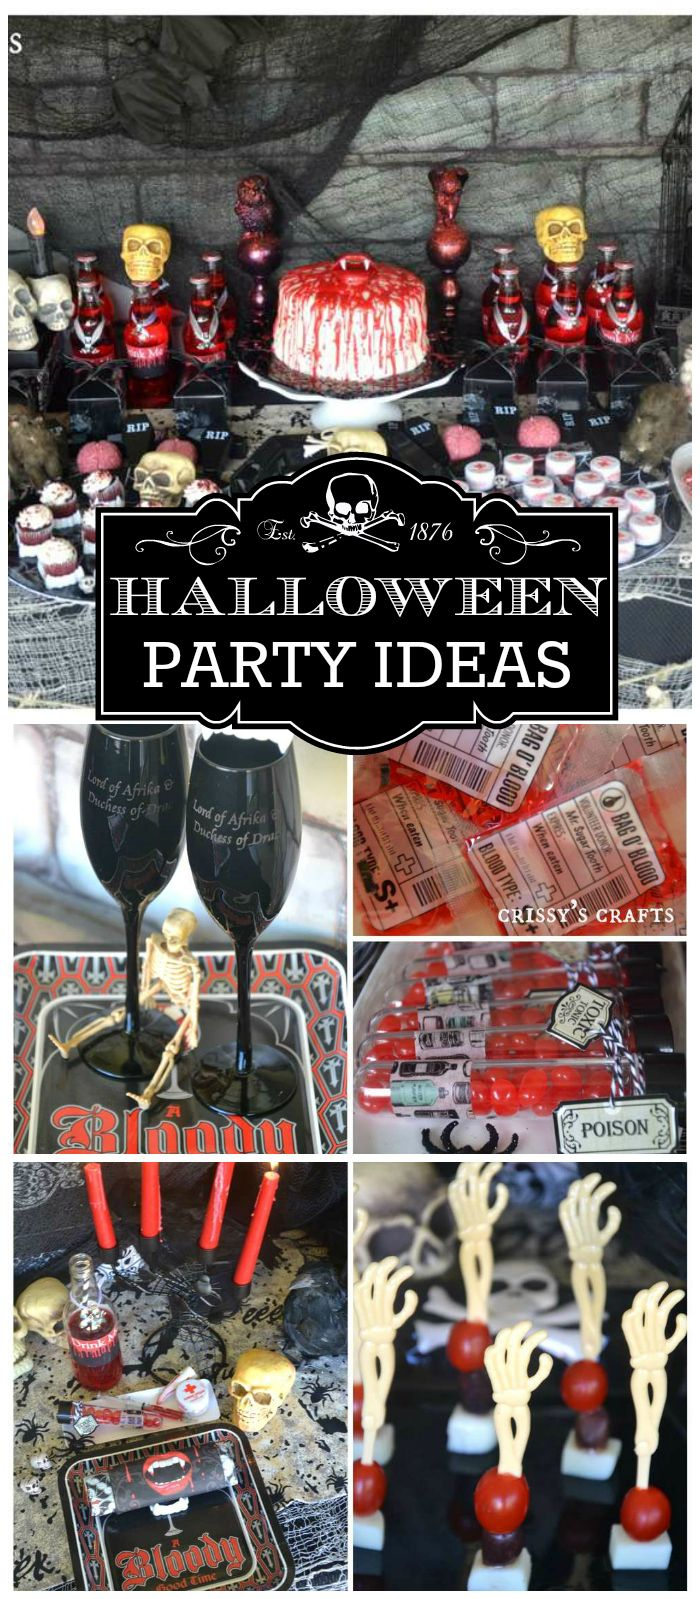 138 best Halloween Party Ideas images on Pinterest